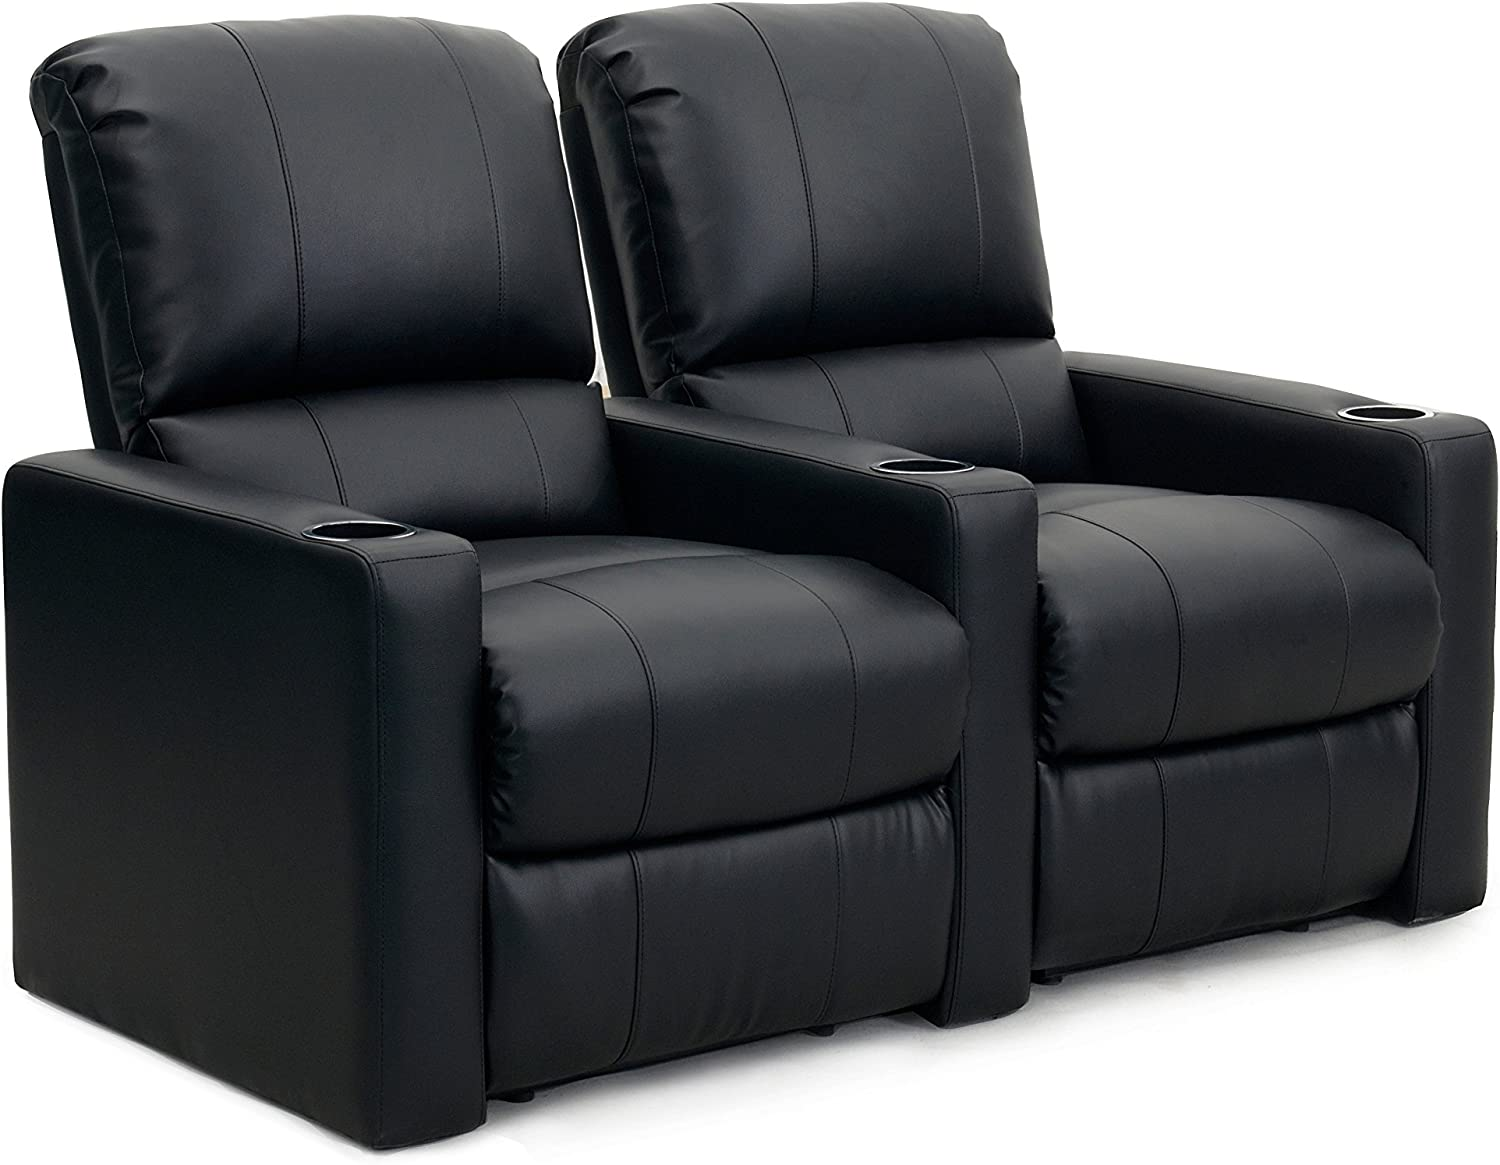 Octane Seating Octane Charger XS300 Leather Home Theater Recliner Set Row of 2 , Black